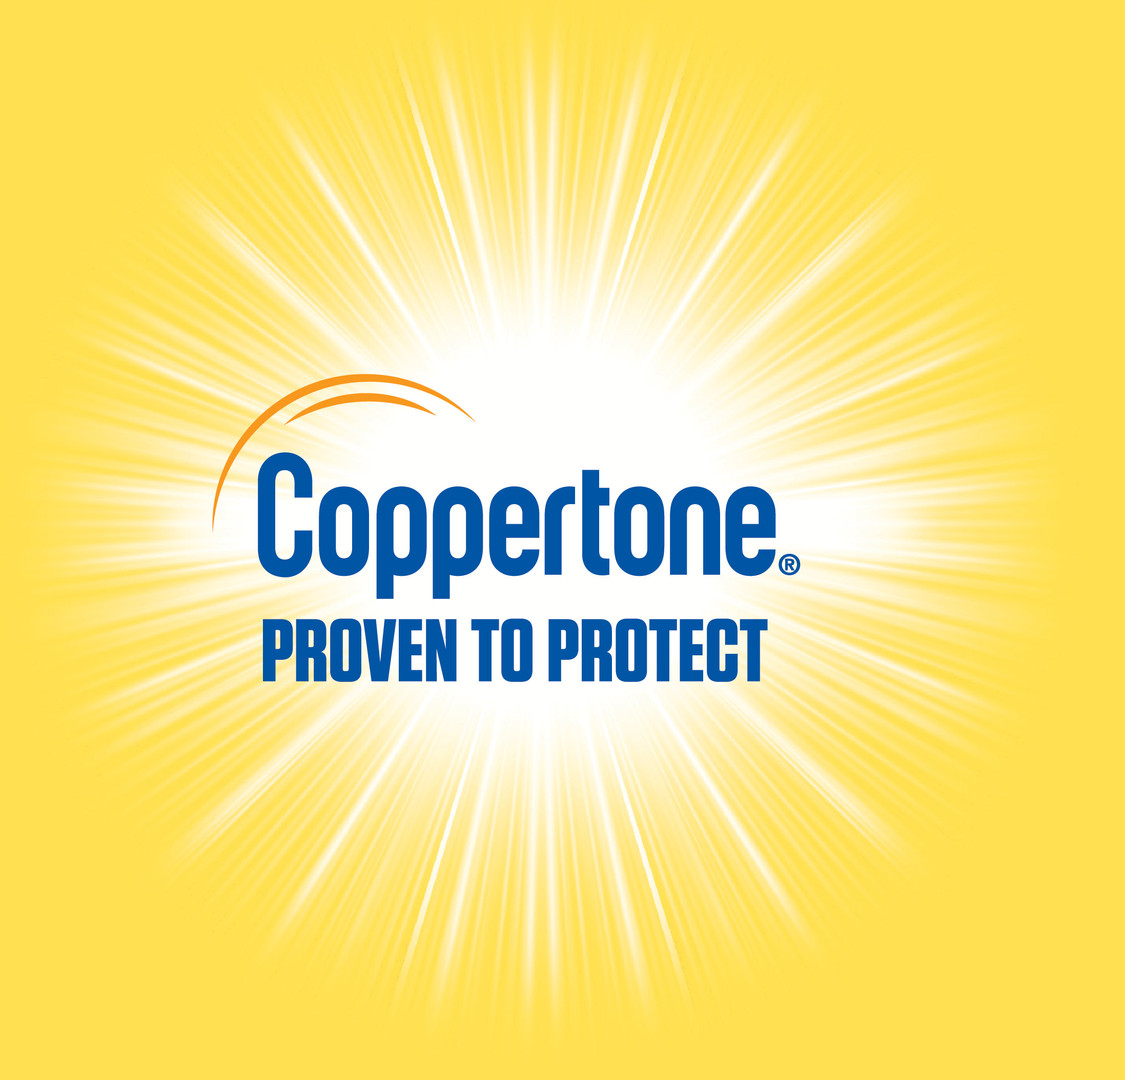 Coppertone Proven to Protect with Burst_